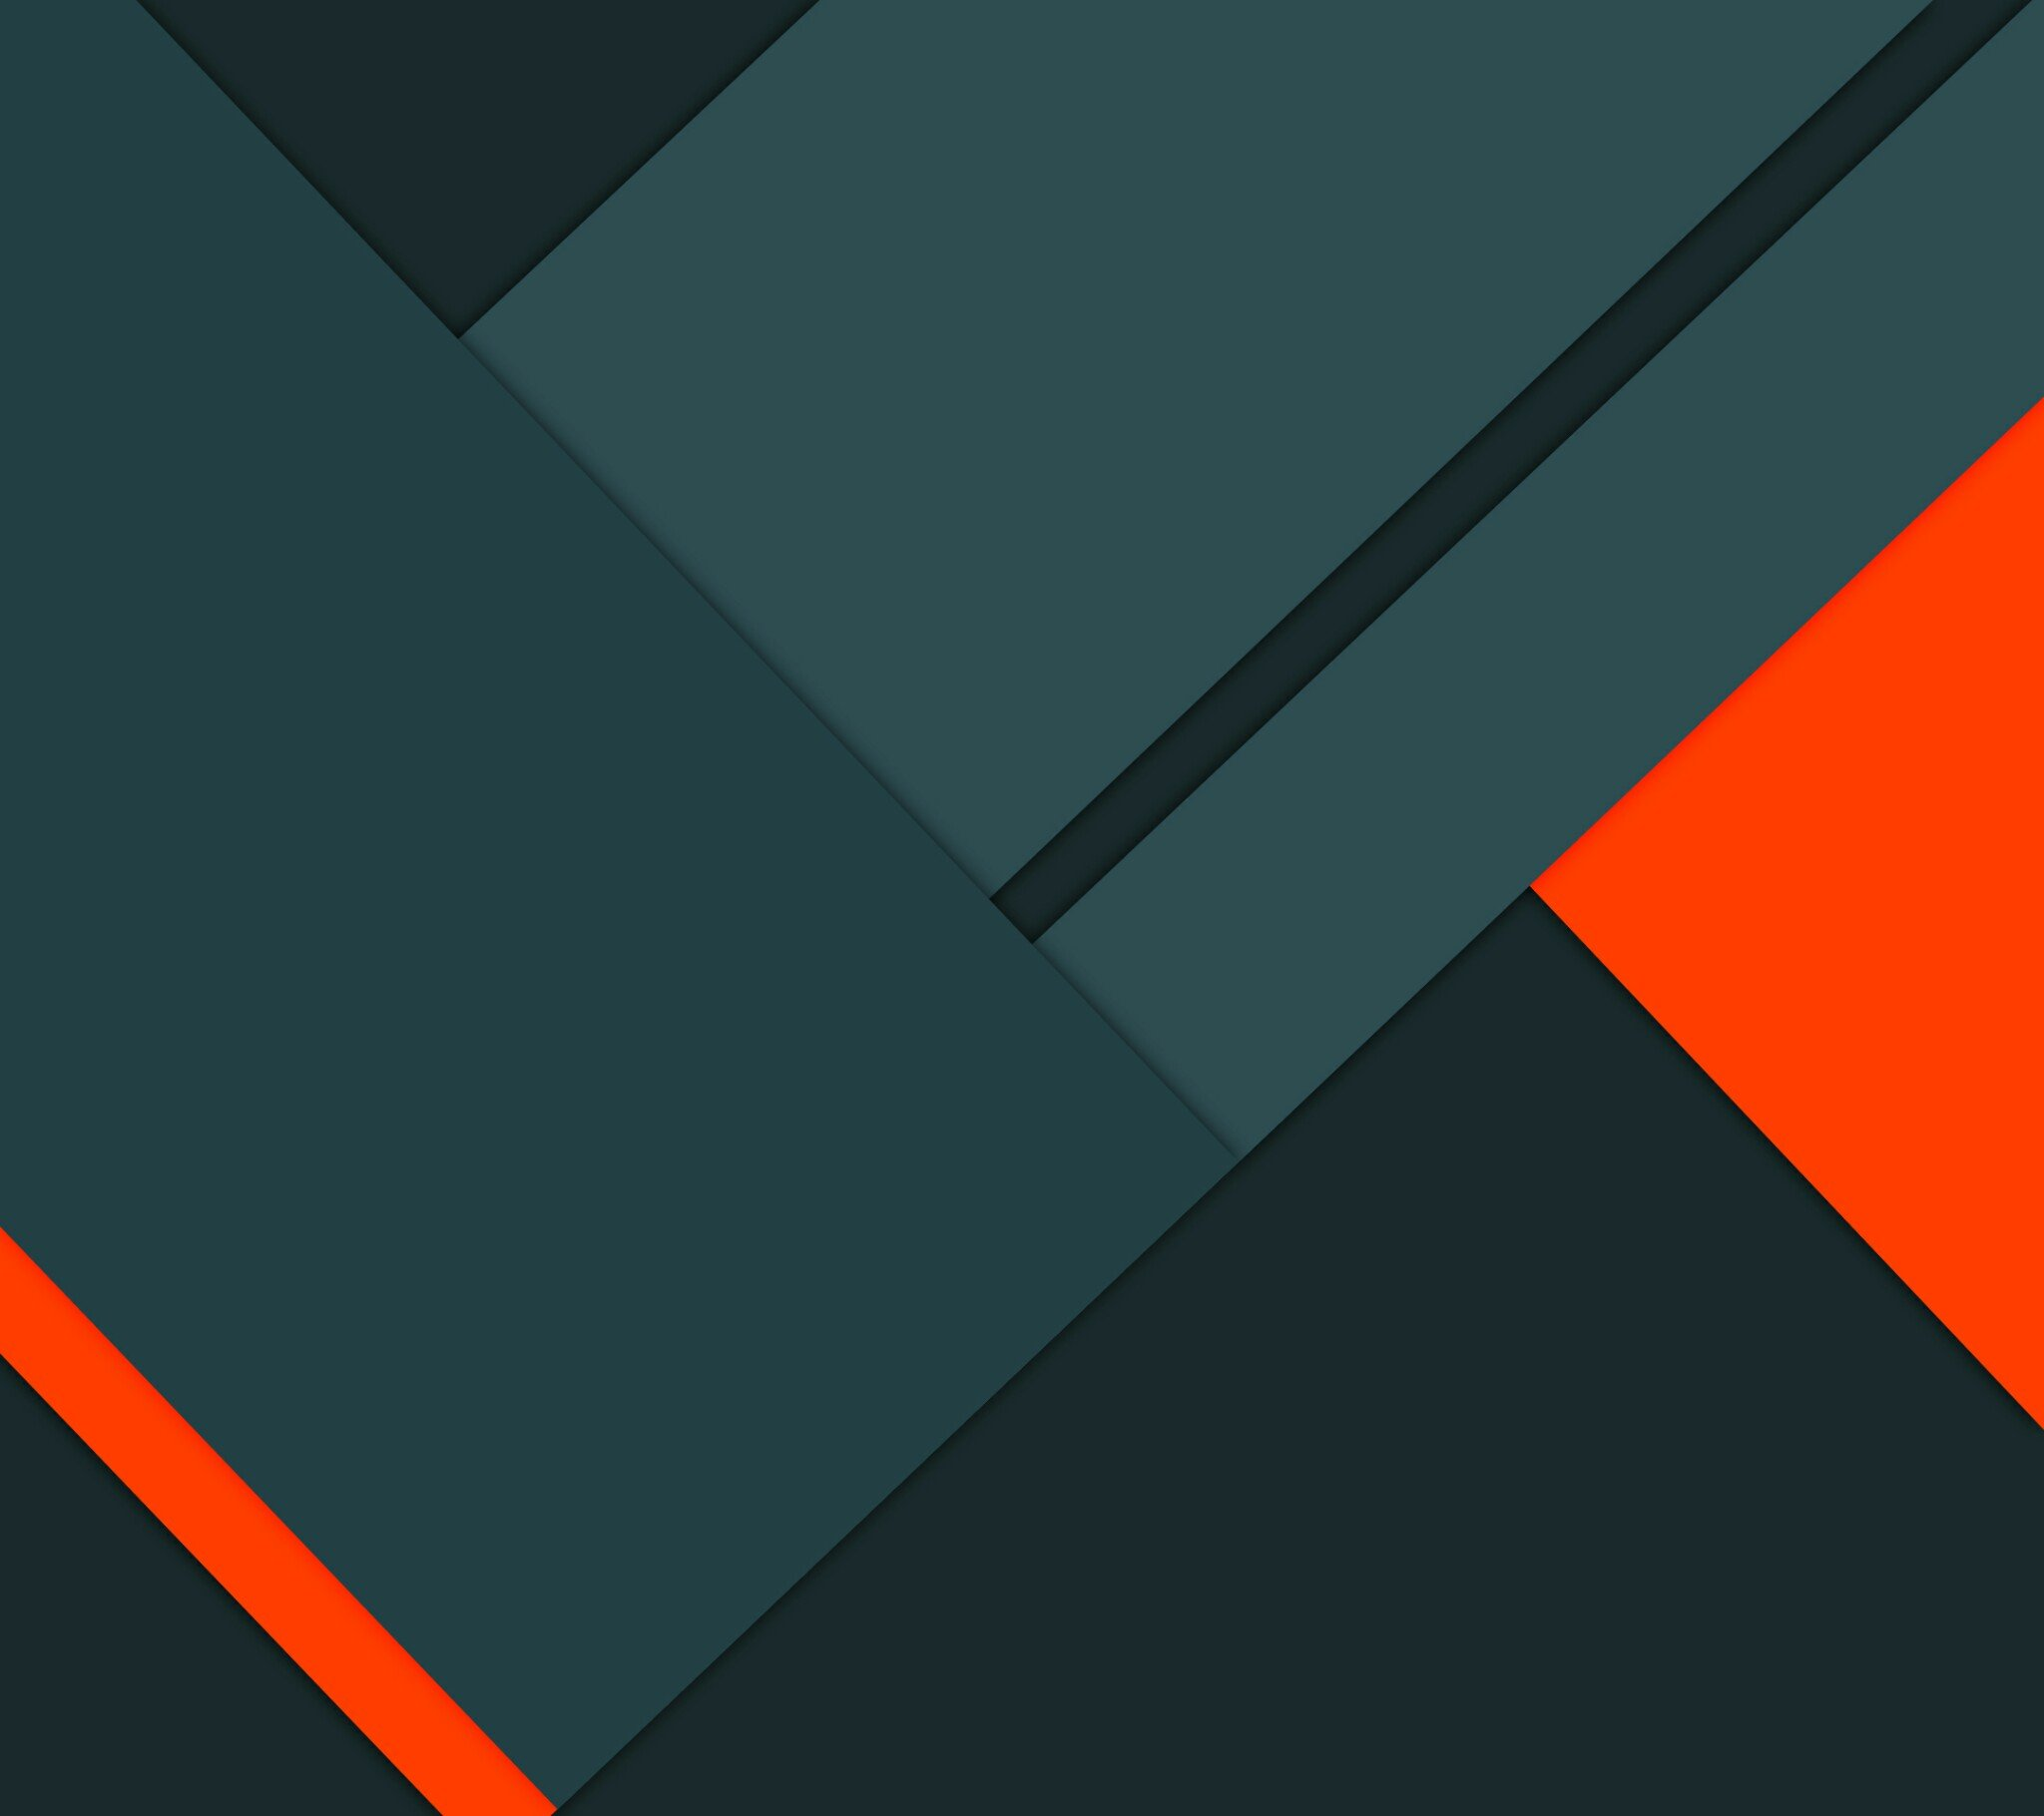 Ultimate Material Design inspired wallpaper collection